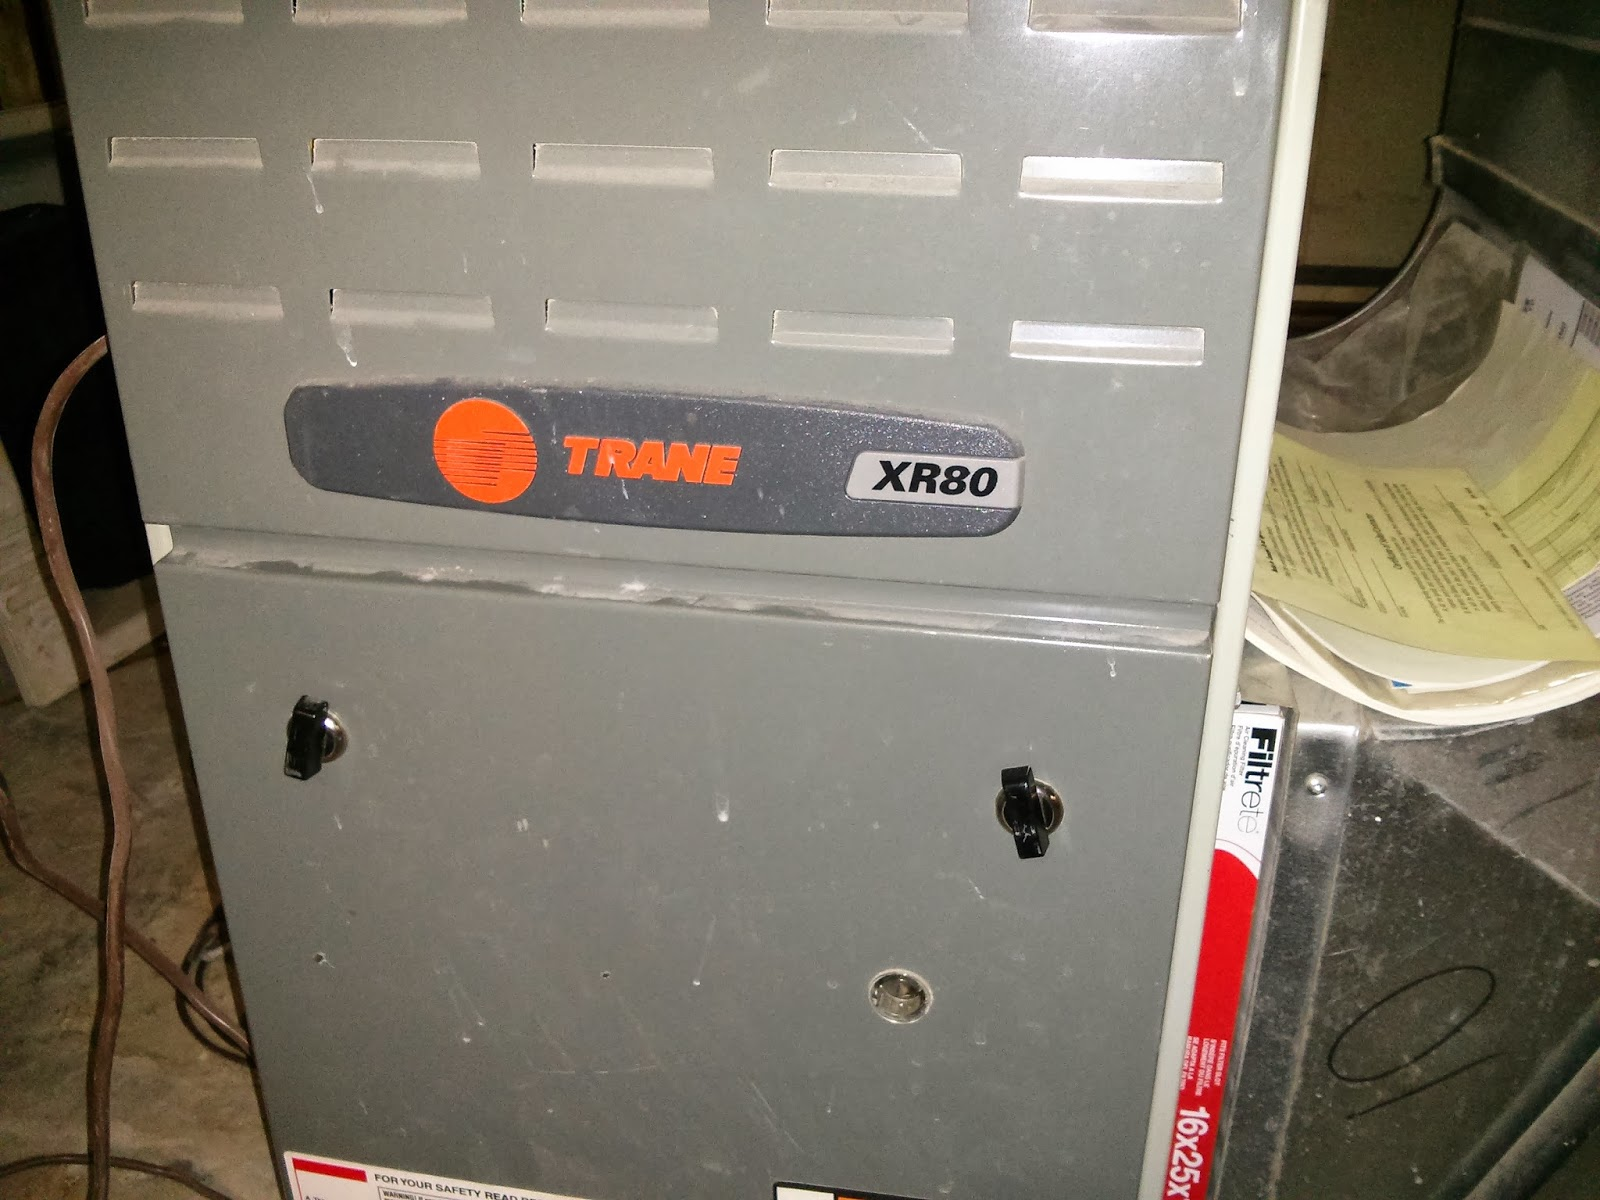 Trane Xr80 Diagram on boat wiring schematics